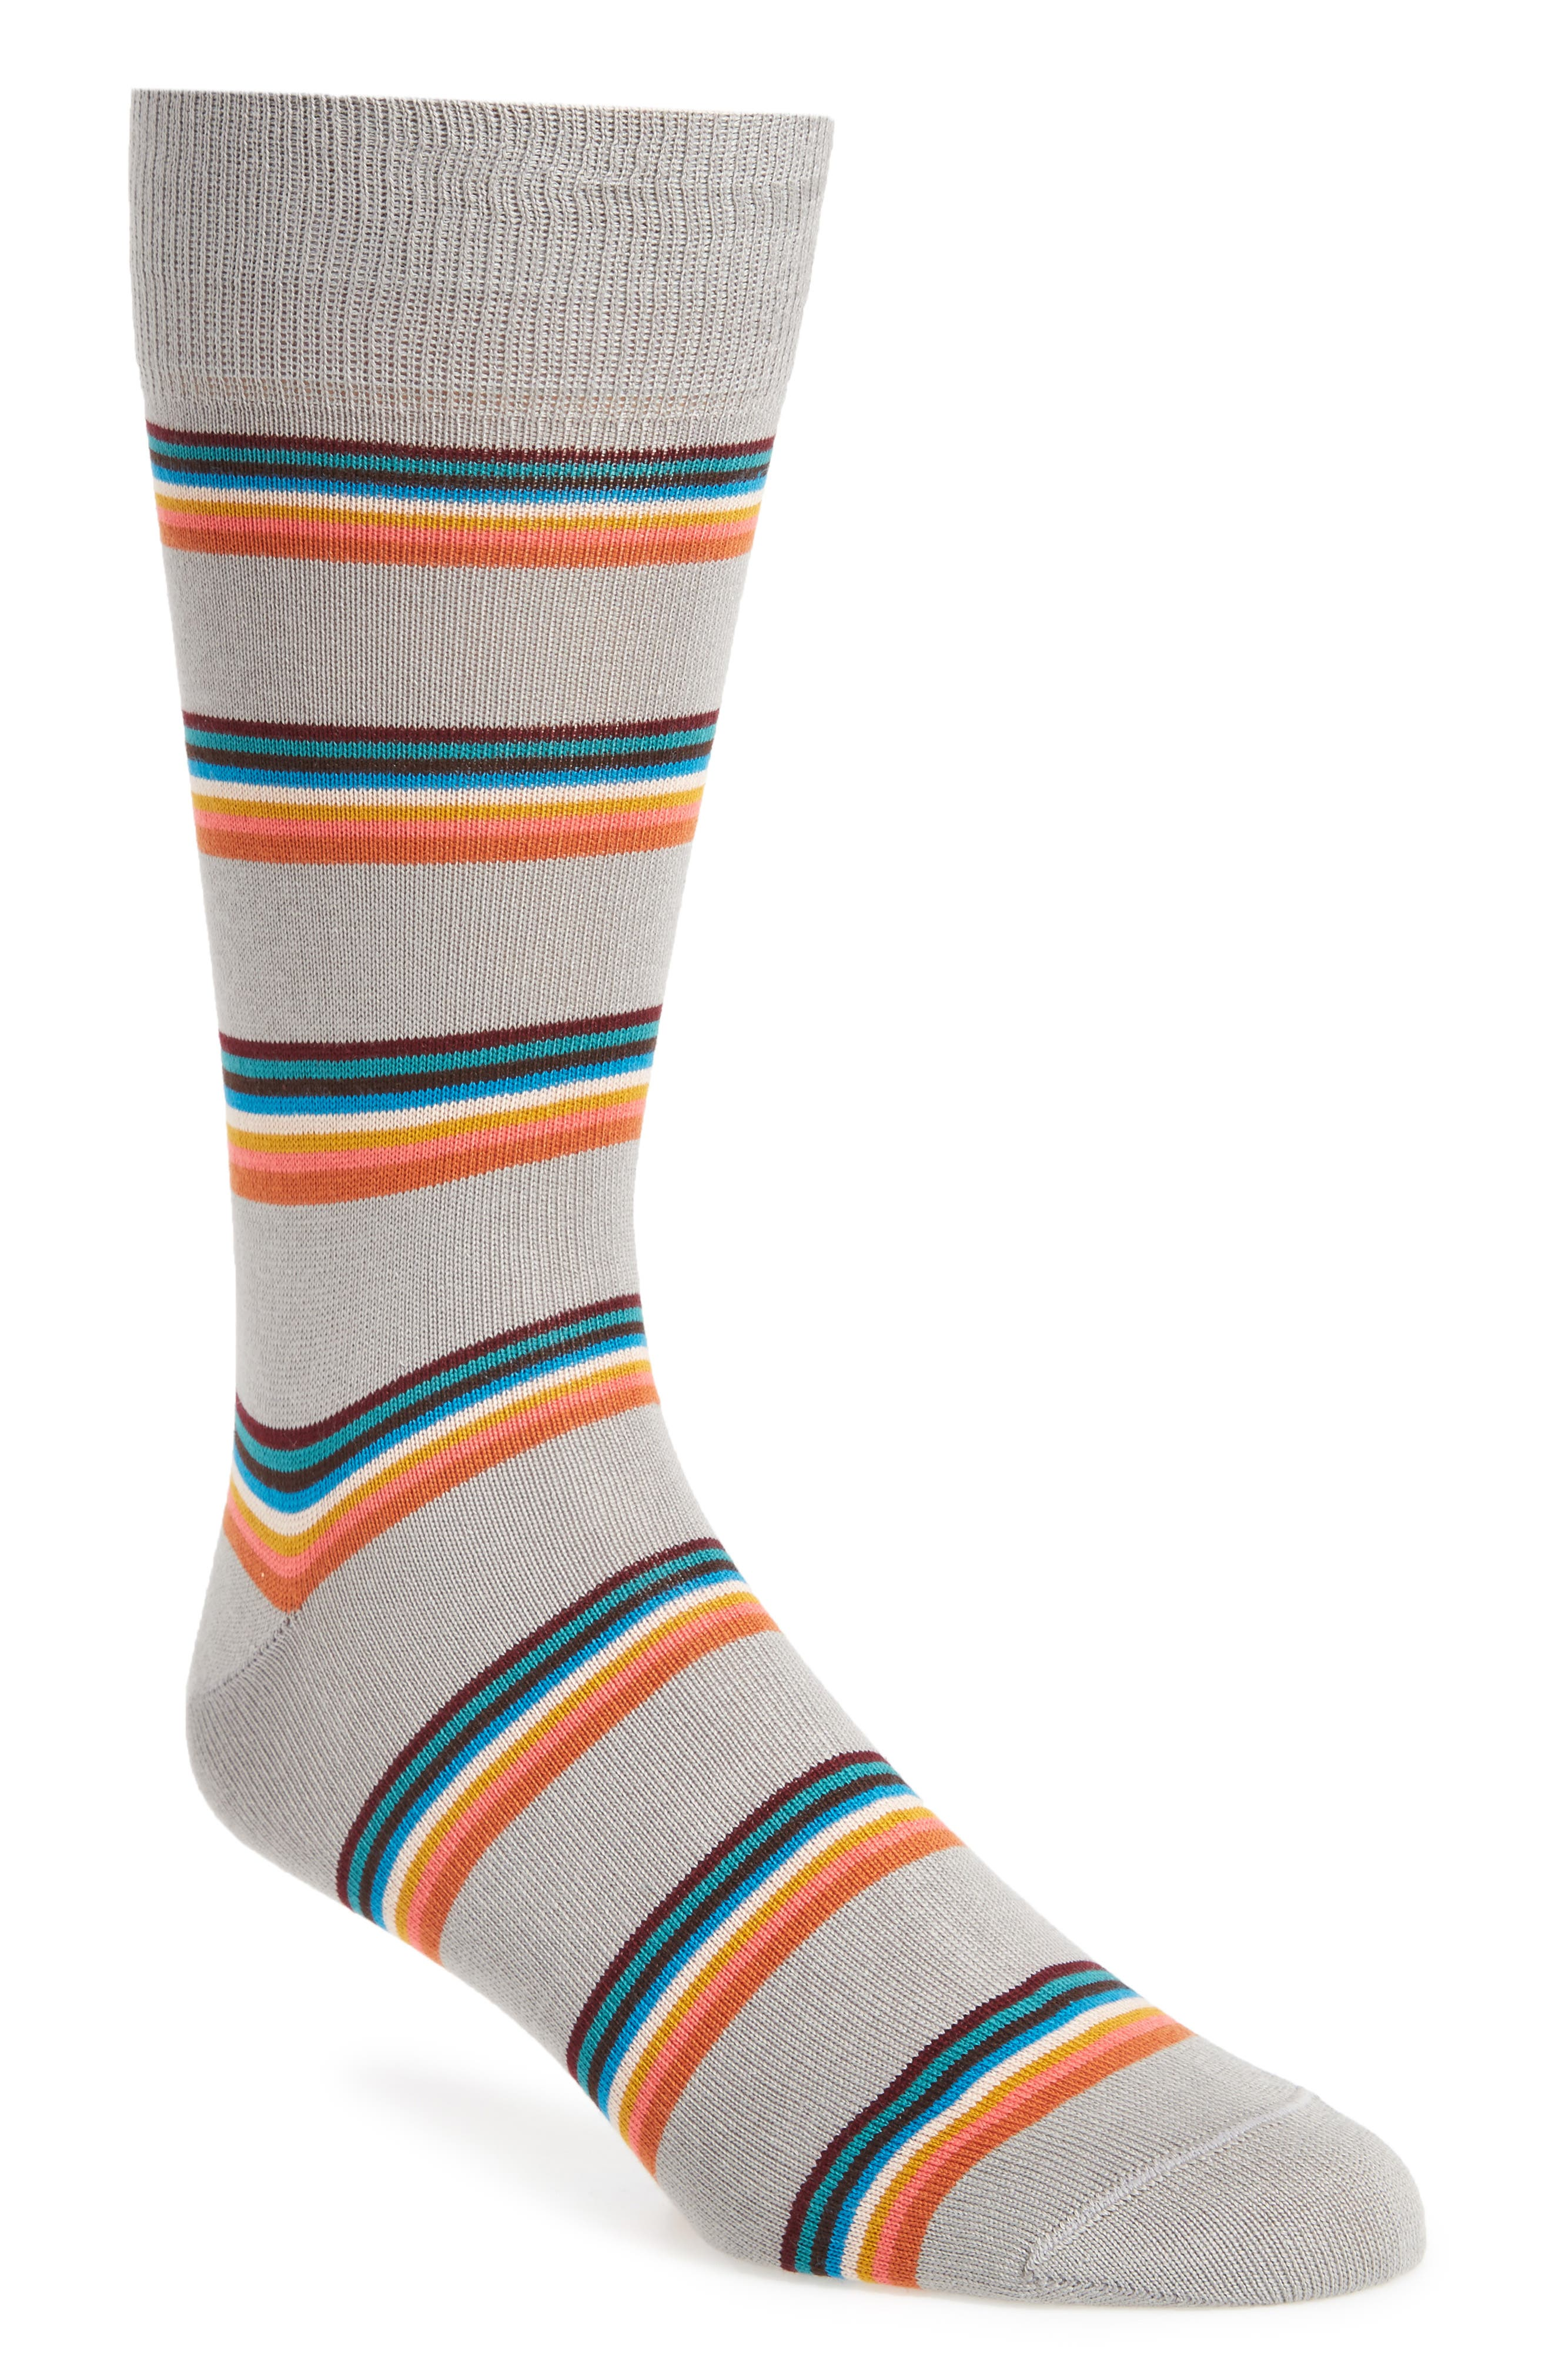 Stripe Socks,                             Main thumbnail 1, color,                             070